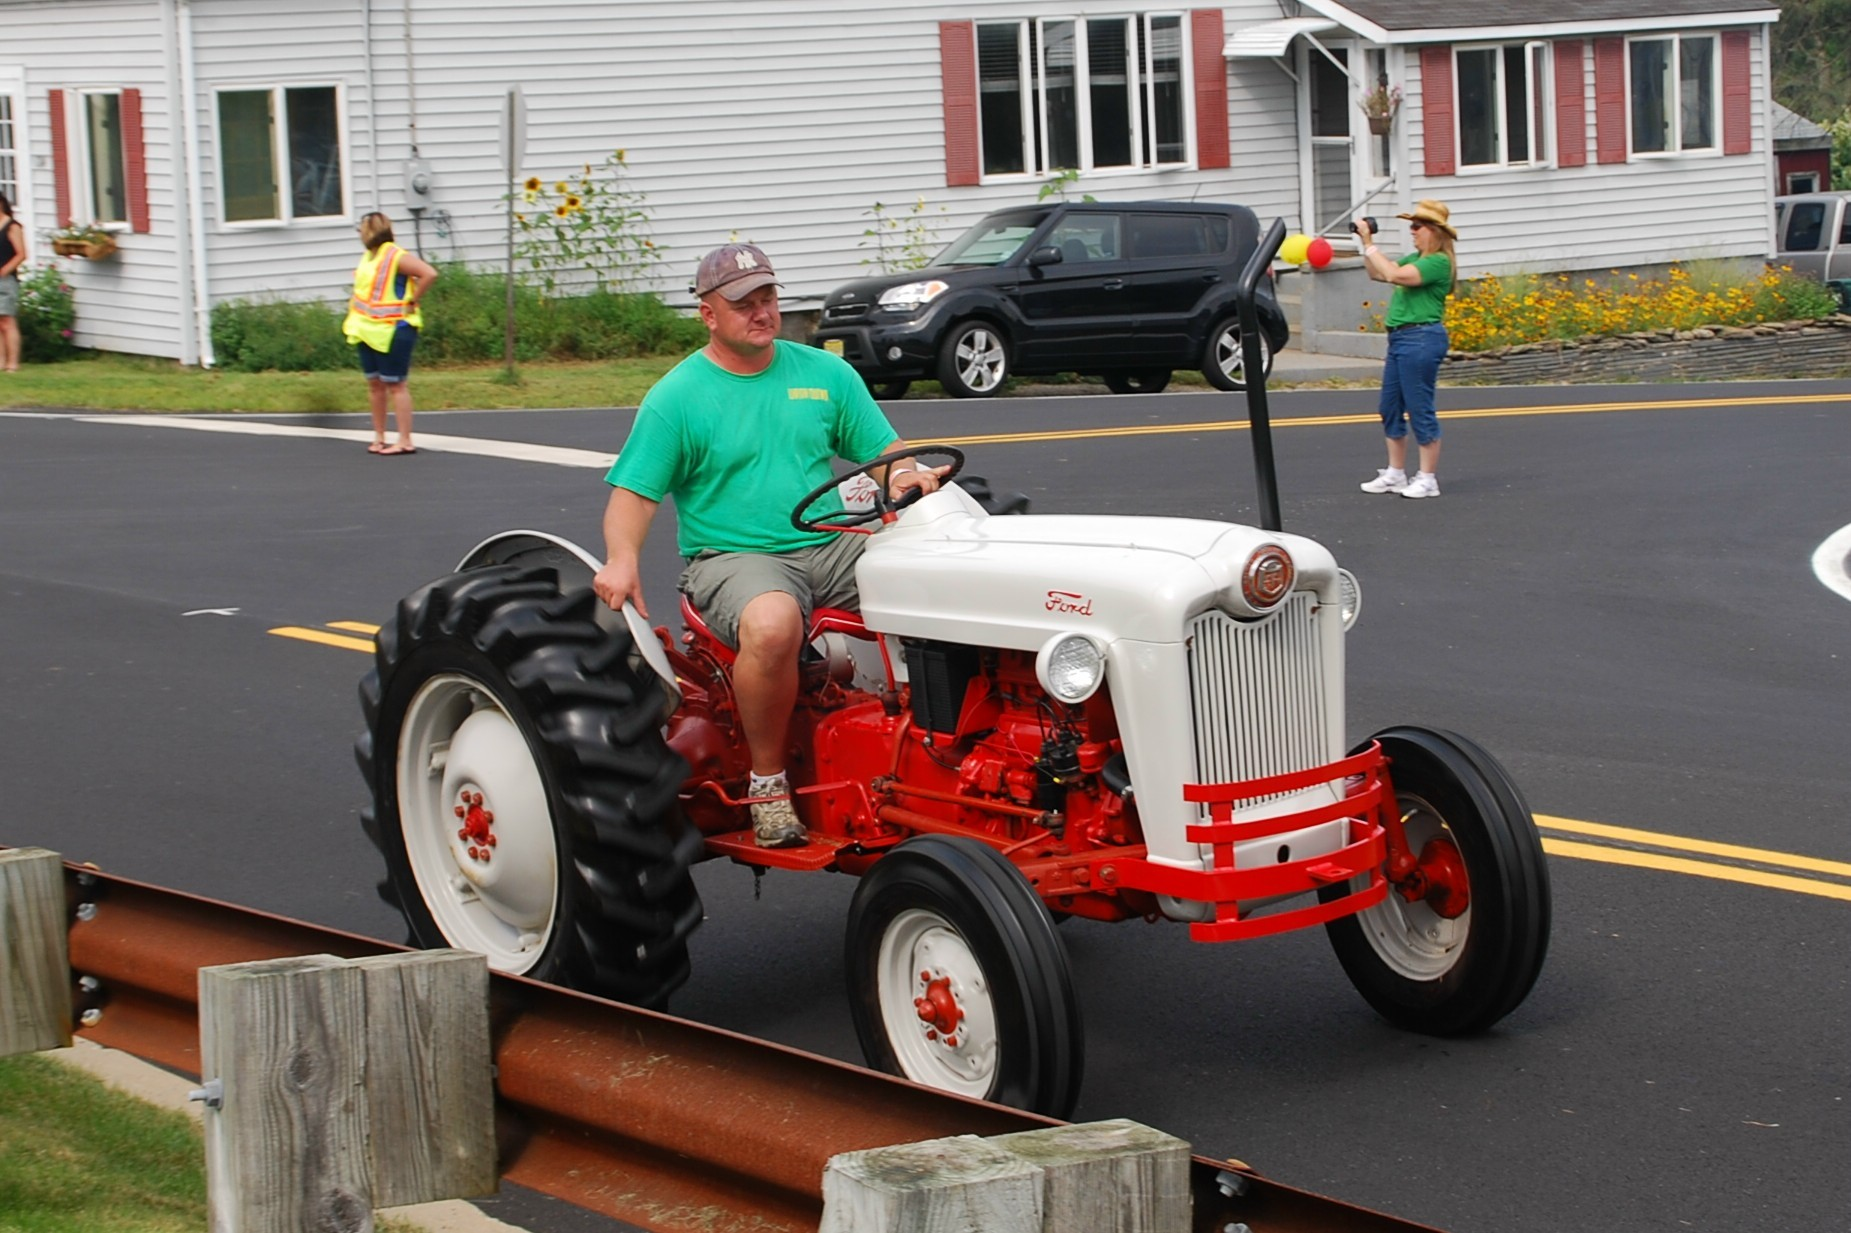 Tractor Parade Seat : Sandyston puts tractors on parade news tapinto